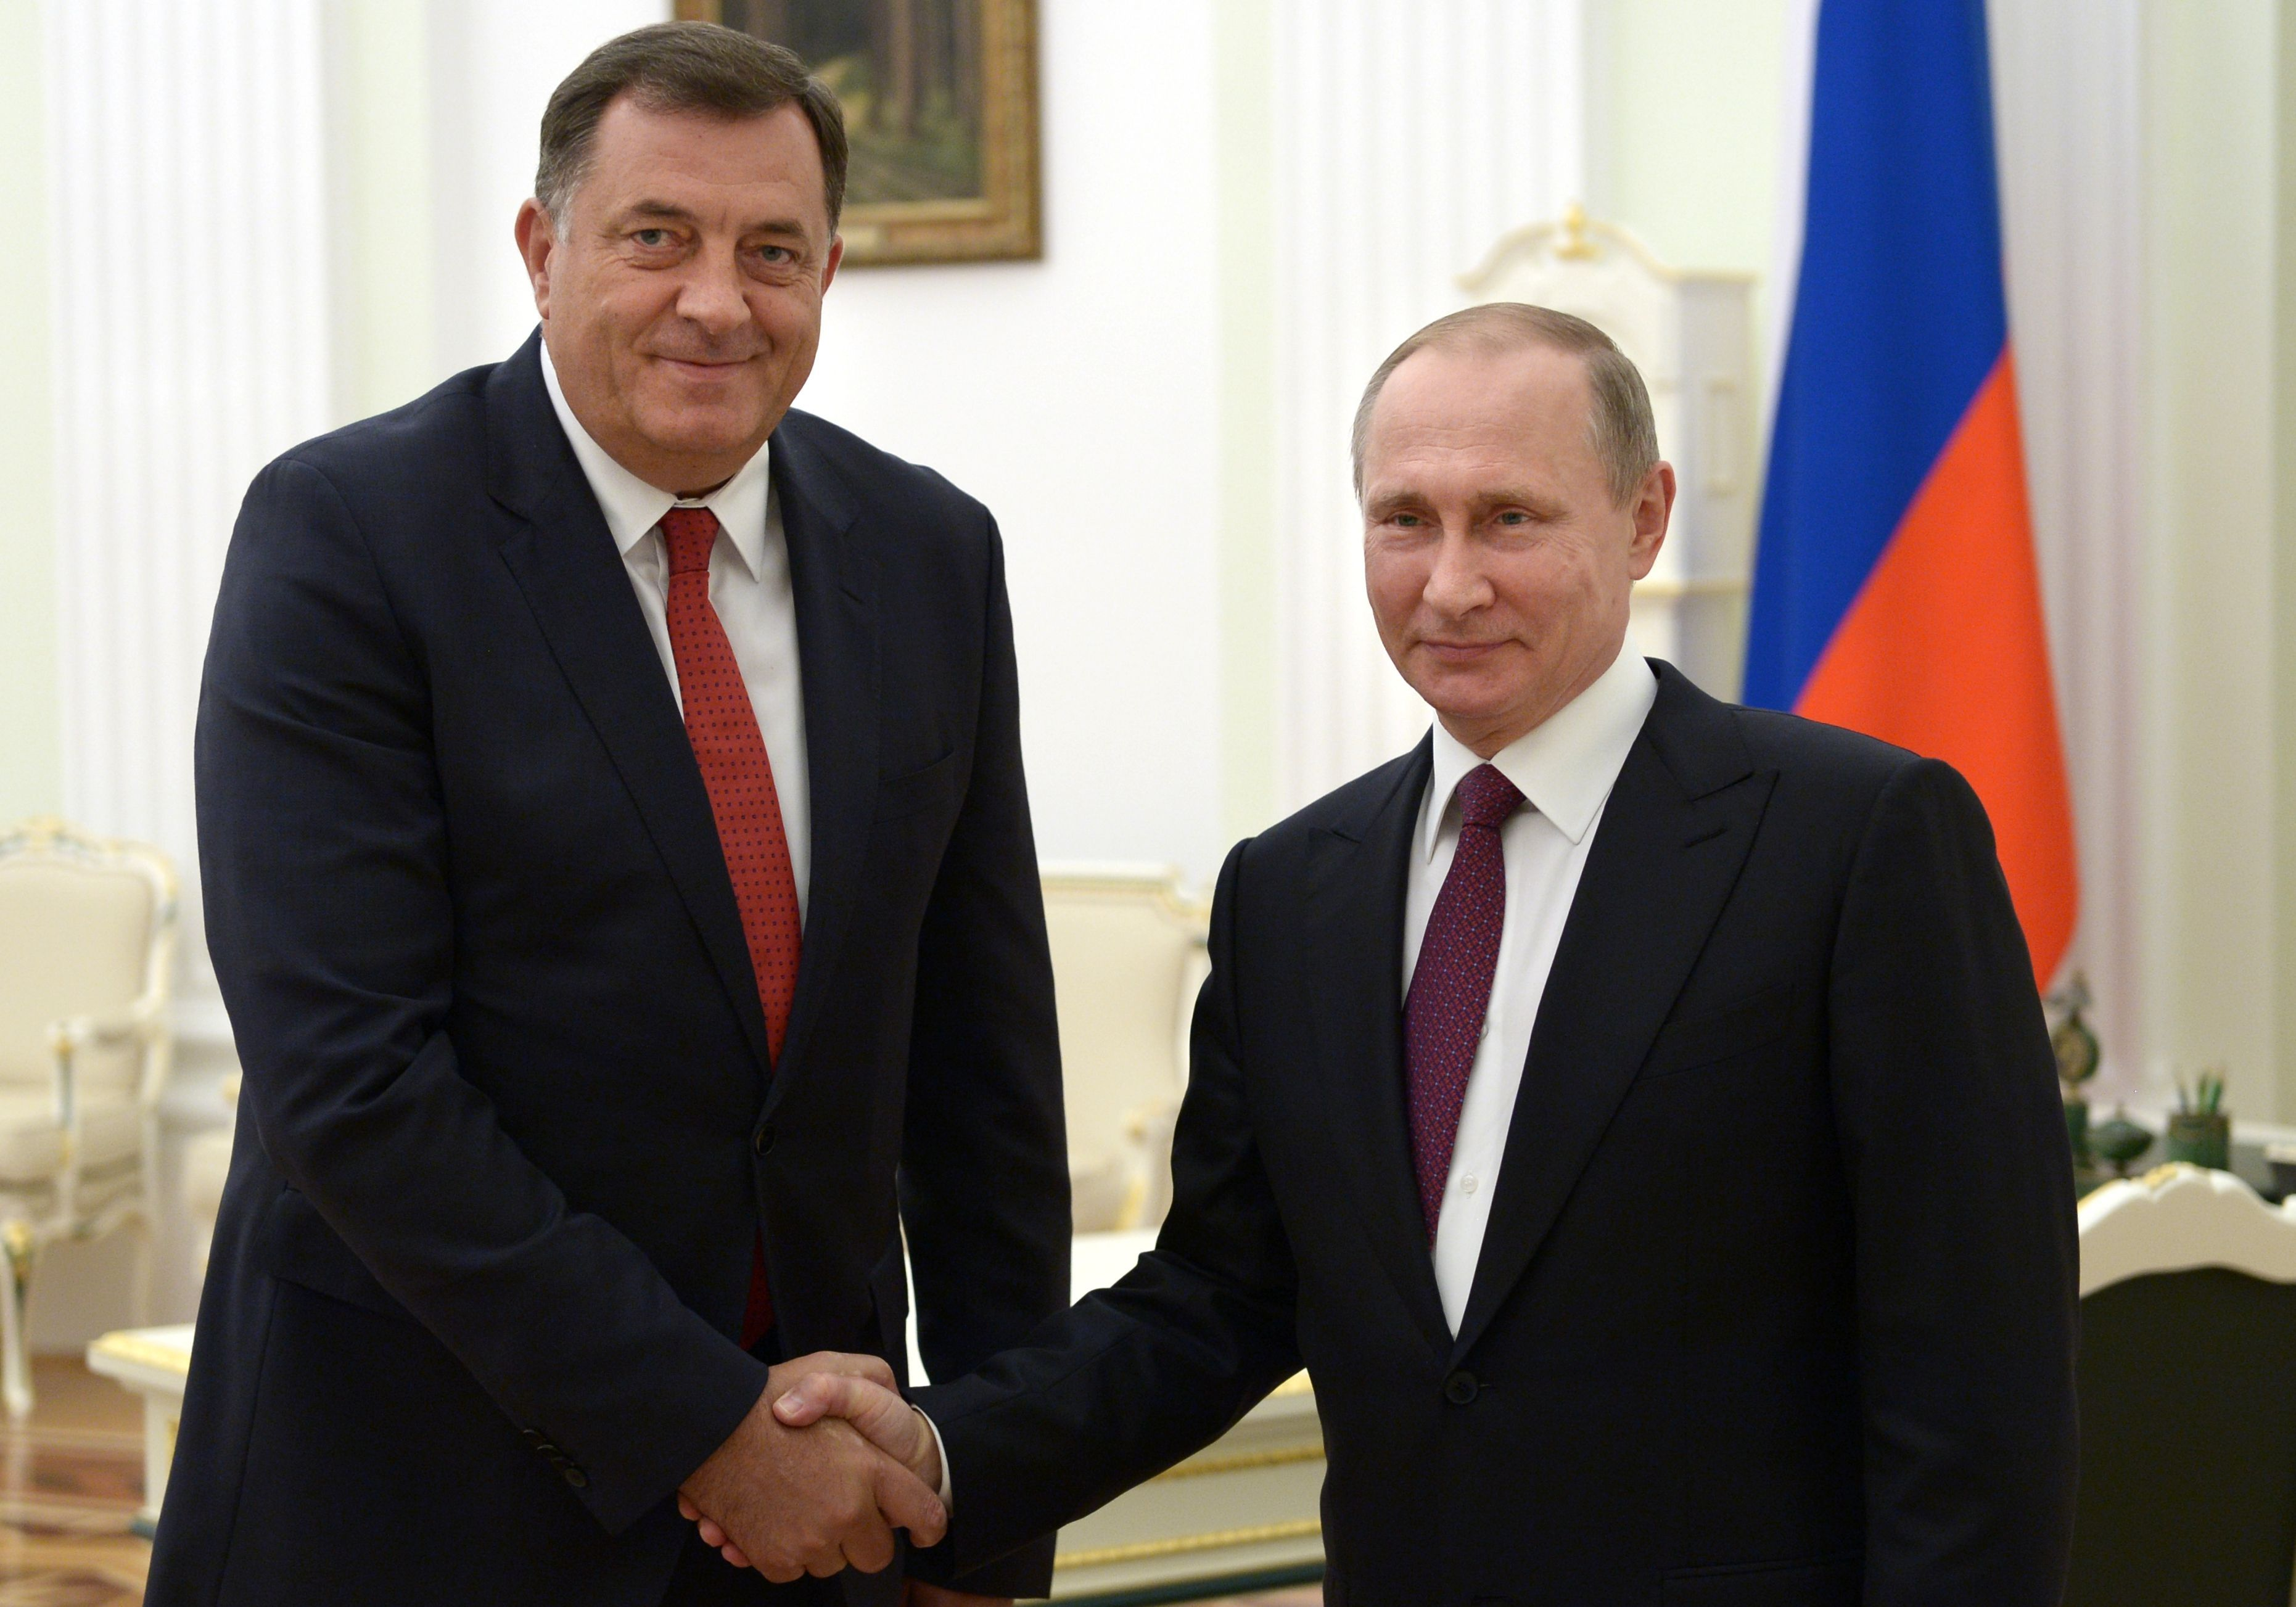 Russian President Vladimir Putin shakes hands with President of the Republika Srpska in Bosnia and Herzegovina Milorad Dodik during a meeting in Moscow in 2016.